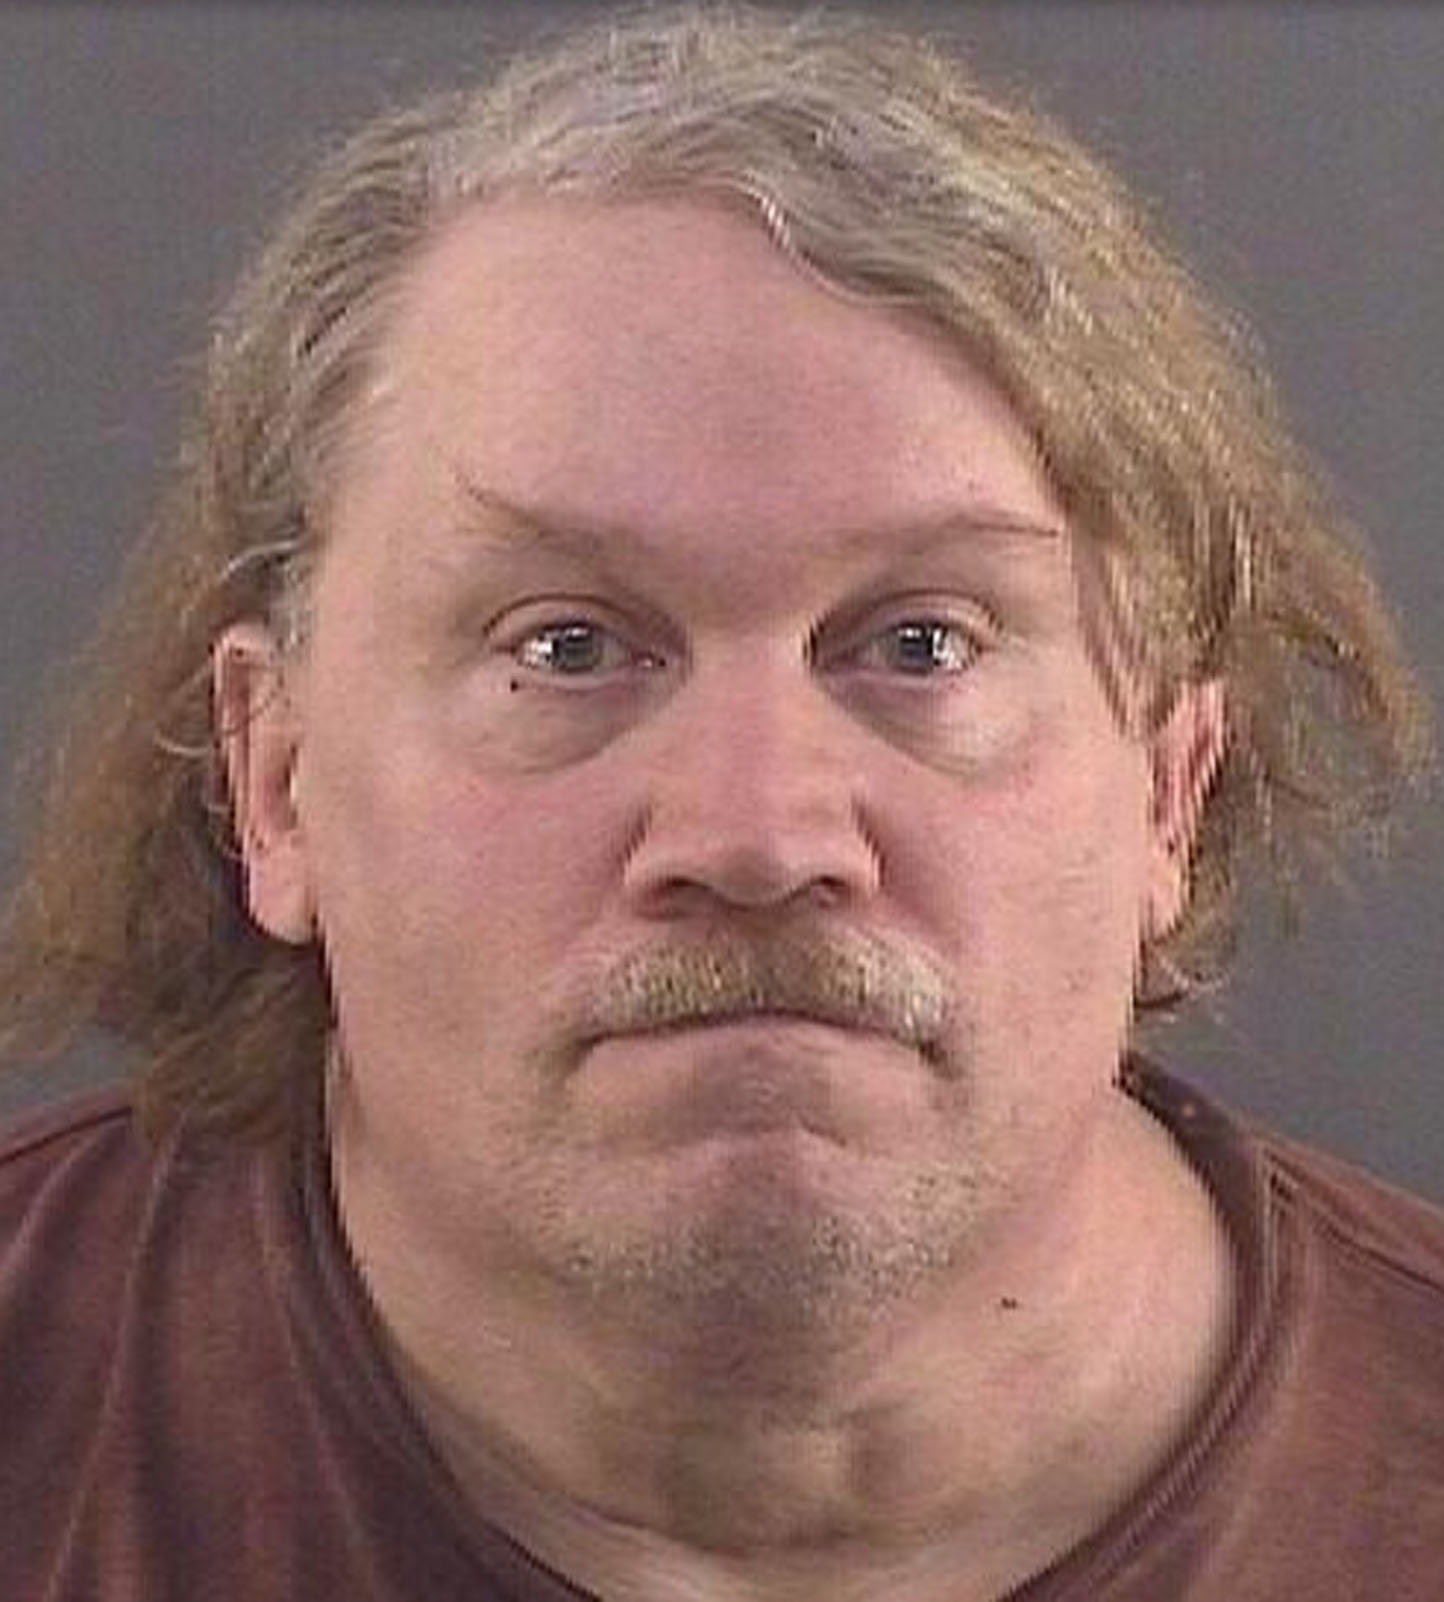 Pervert sentenced after admitting to having sex with his pet dog - 웹